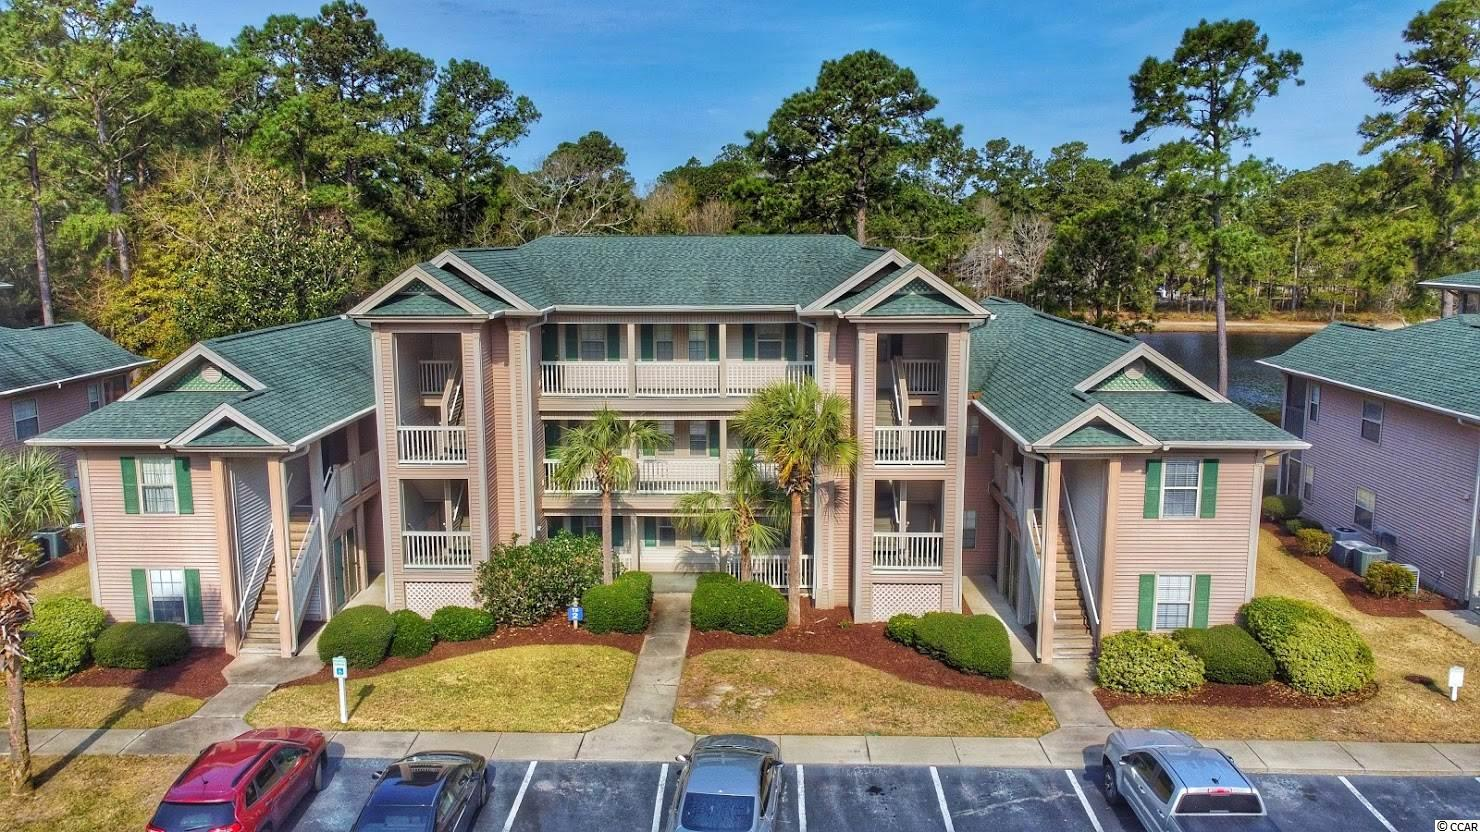 Golfers delight!  Don't miss on this opportunity to own a 2nd floor condo on the True Blue golf course and overlooking a pond.  This unit features 2 bedrooms, 2 bath with luxury vinyl flooring and many upgrades.  Spacious screened in balcony.  Condo comes furnished.